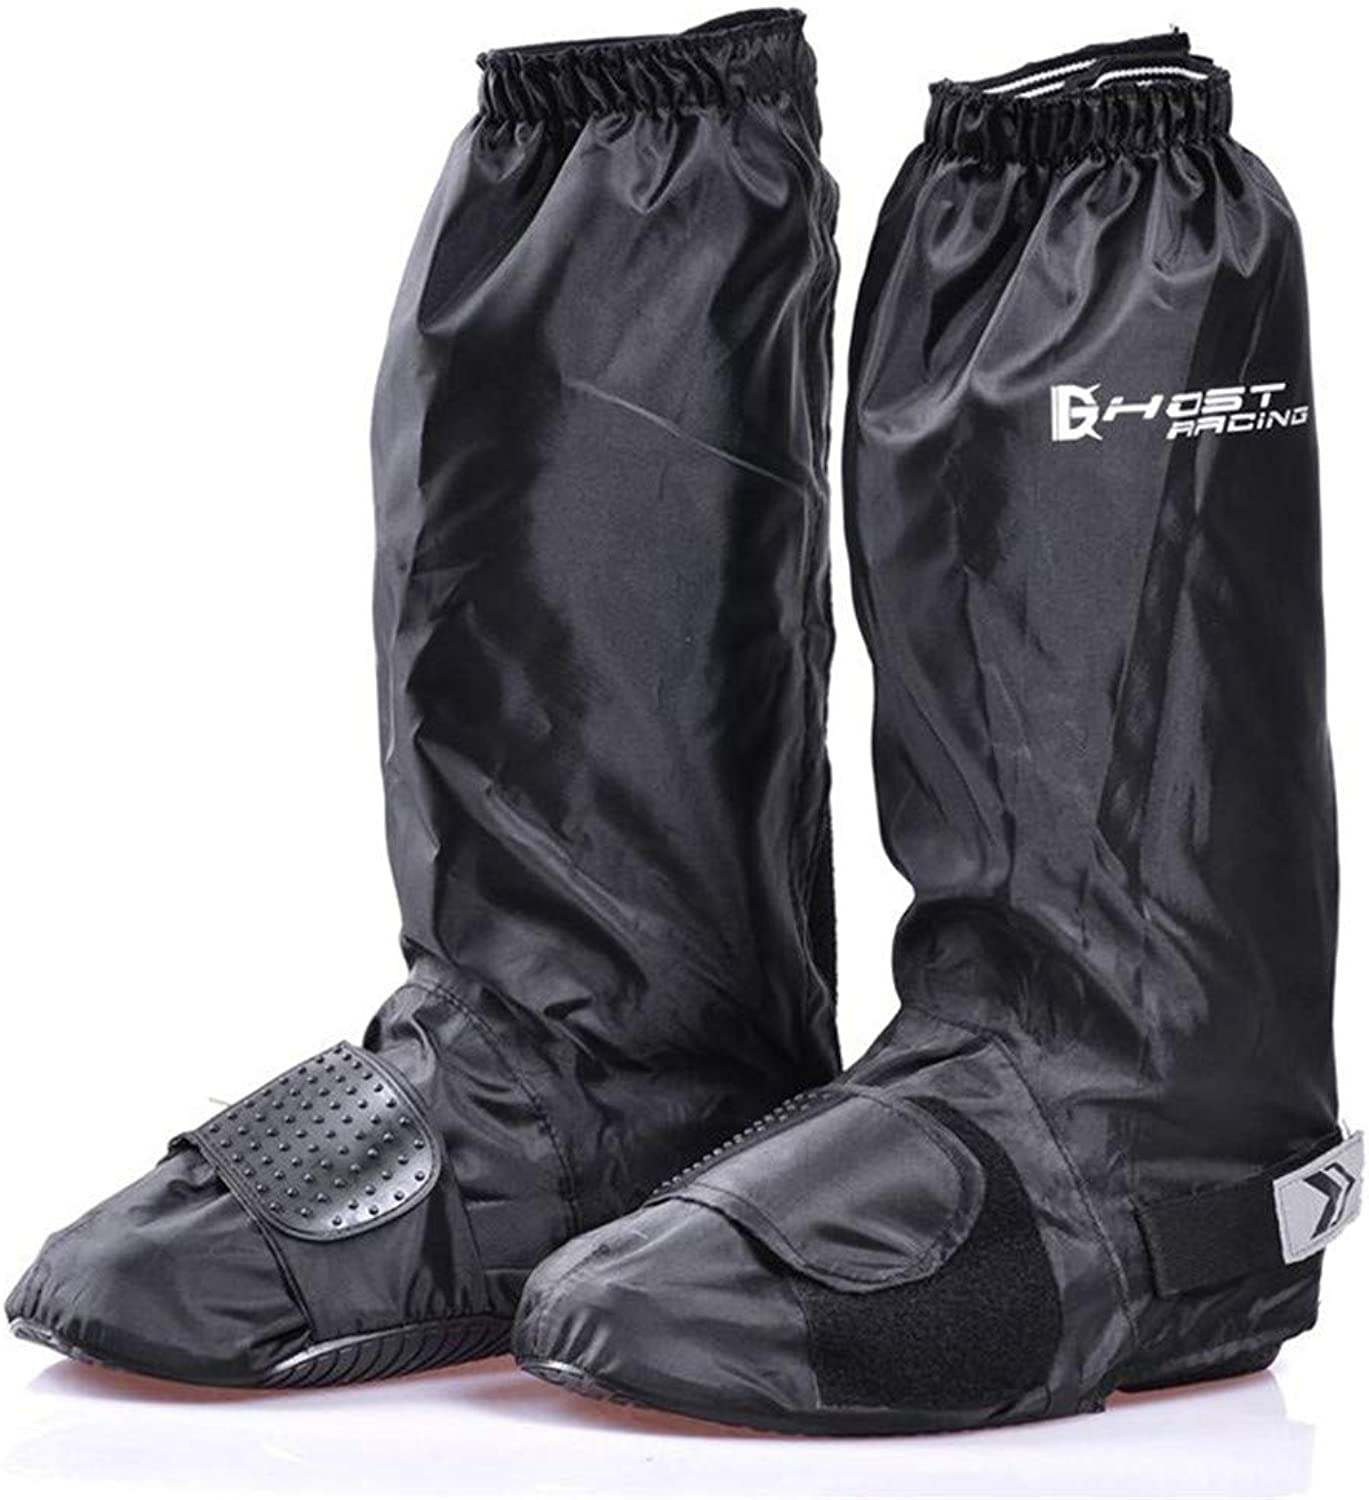 Windproof shoes Cover Womens Mens Outdoor Sports Cycle Rainstorm Snowstorm Motorcycle Bike Garden Rain Gear Flat Overshoes Waterproof Overshoes Rain shoes Covers Black Anti-slip Reusable Zippers Boot Co